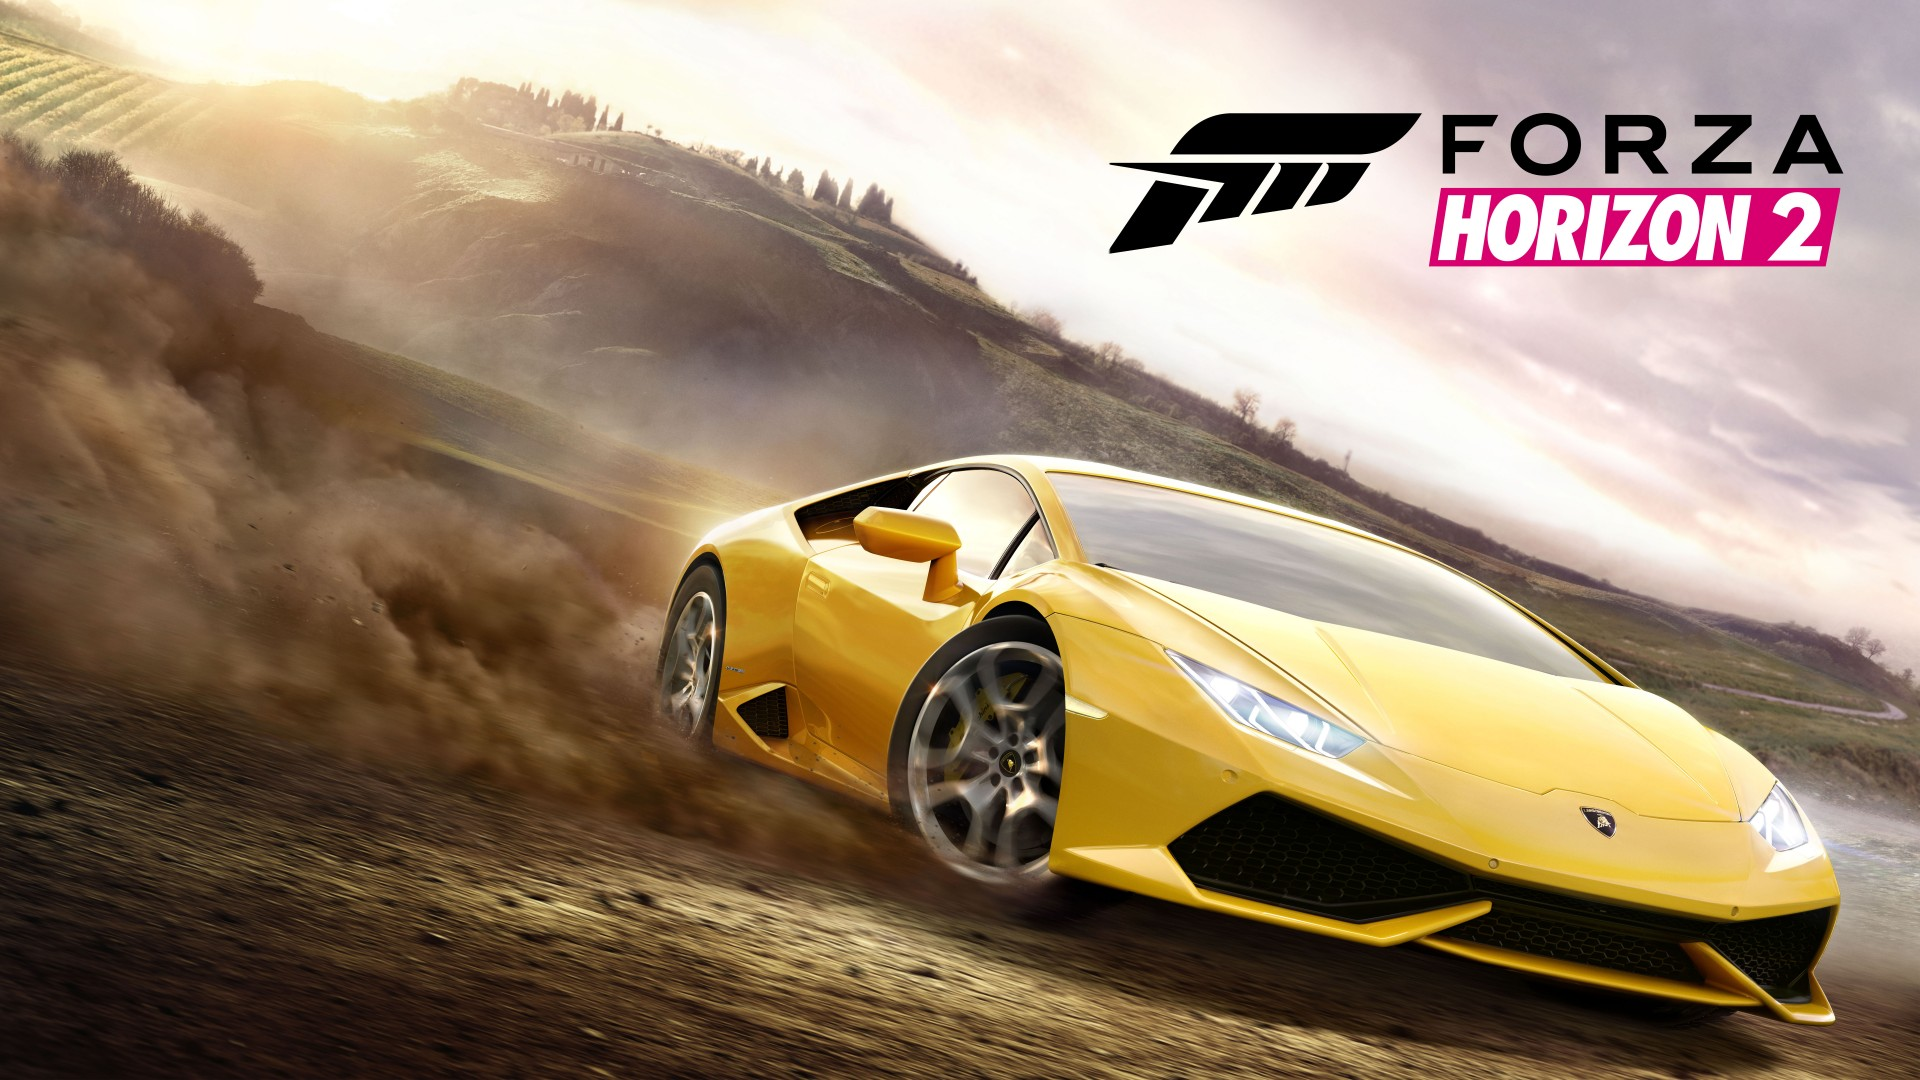 Ipad Wallpaper Anime Forza Horizon 2 Wallpapers Hd Wallpapers Id 13537